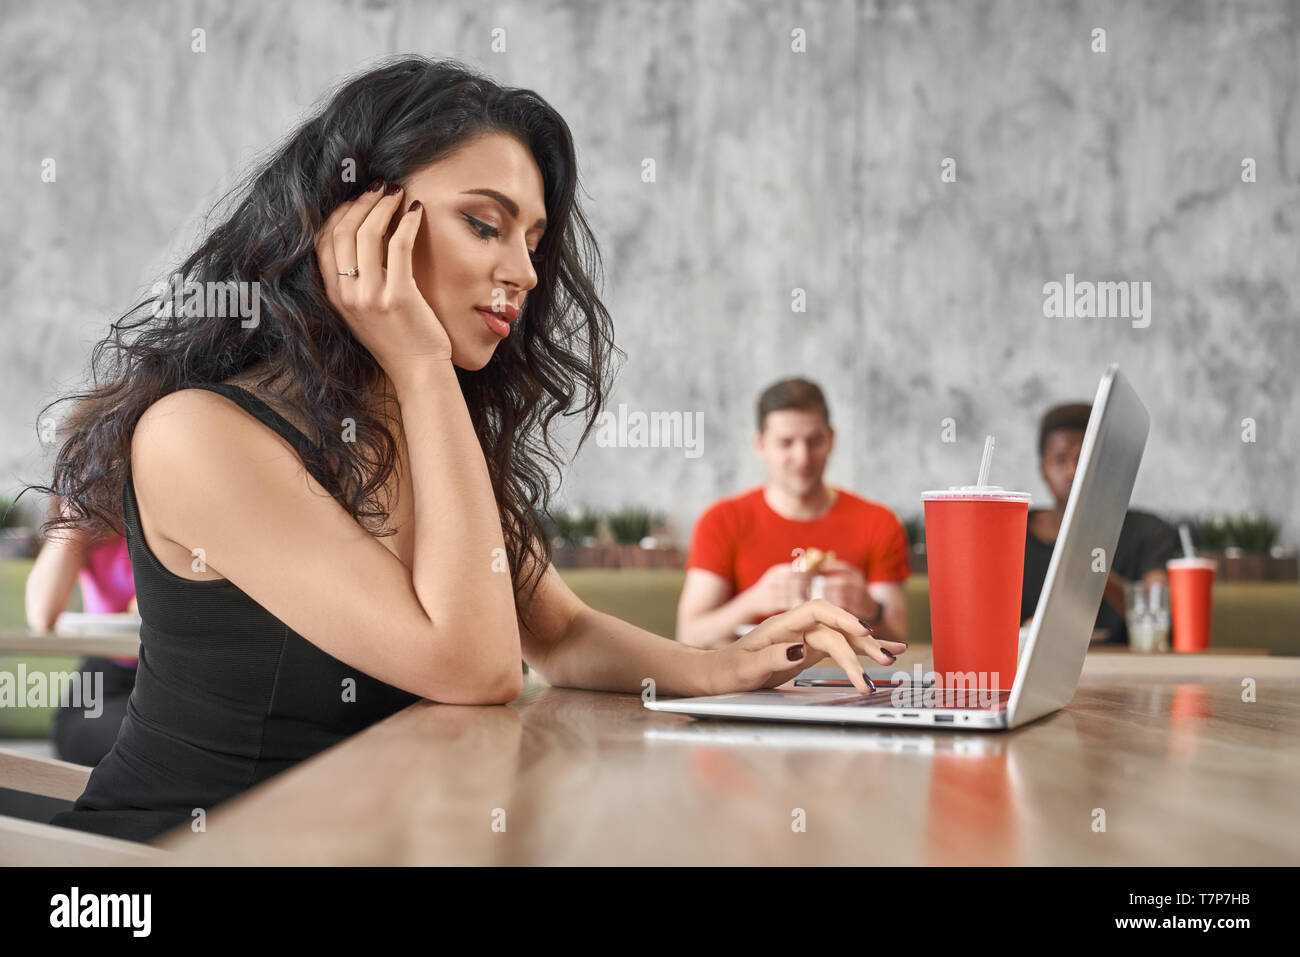 Serious female freelancer sitting in cafe and working with computer. Pretty brunette doing online job and surfing in internet while having lunch in pizzeria. Concept of network and job and wifi. Stock Photo